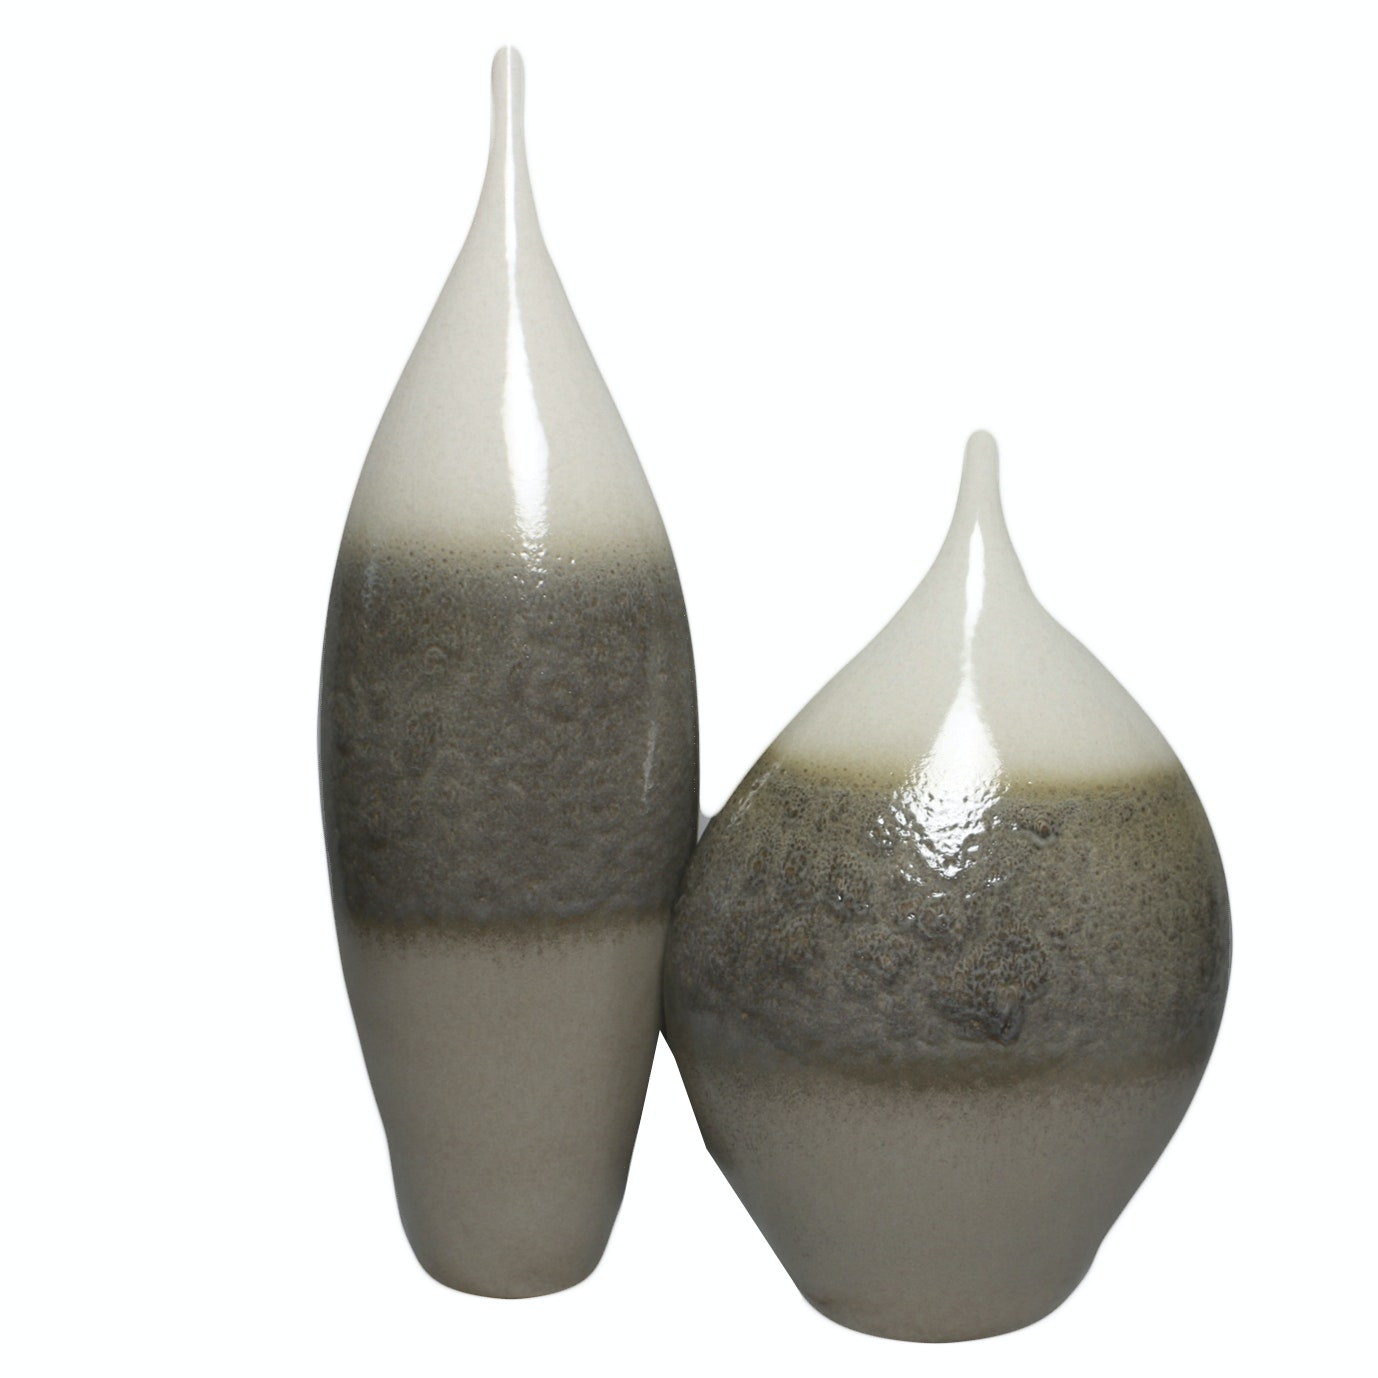 Decorative Ceramic Vases